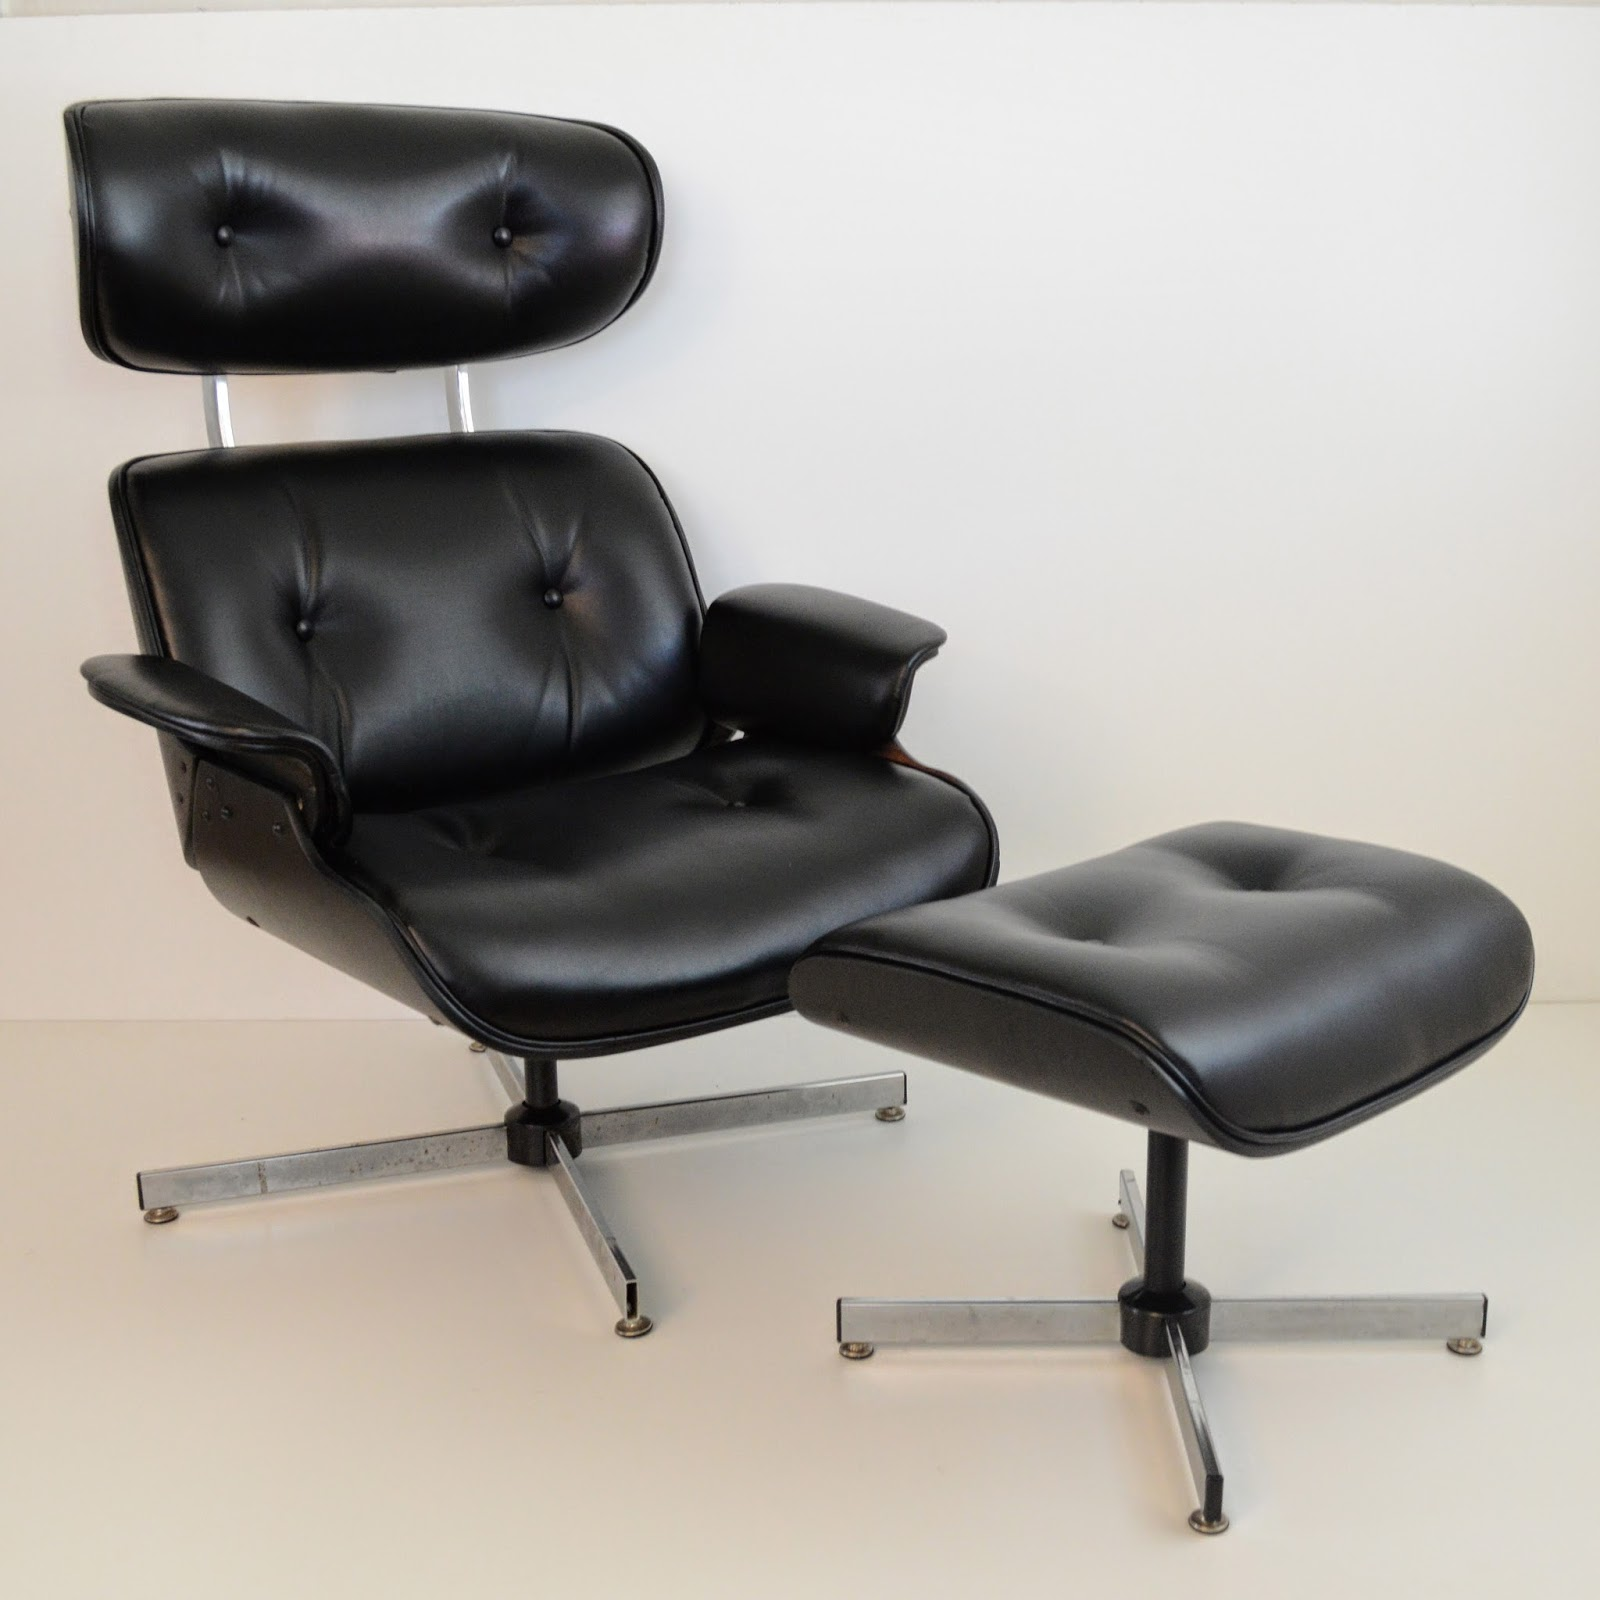 Tremendous Remnant Eames Style Lounge Chair Ottoman Black On Black Beatyapartments Chair Design Images Beatyapartmentscom